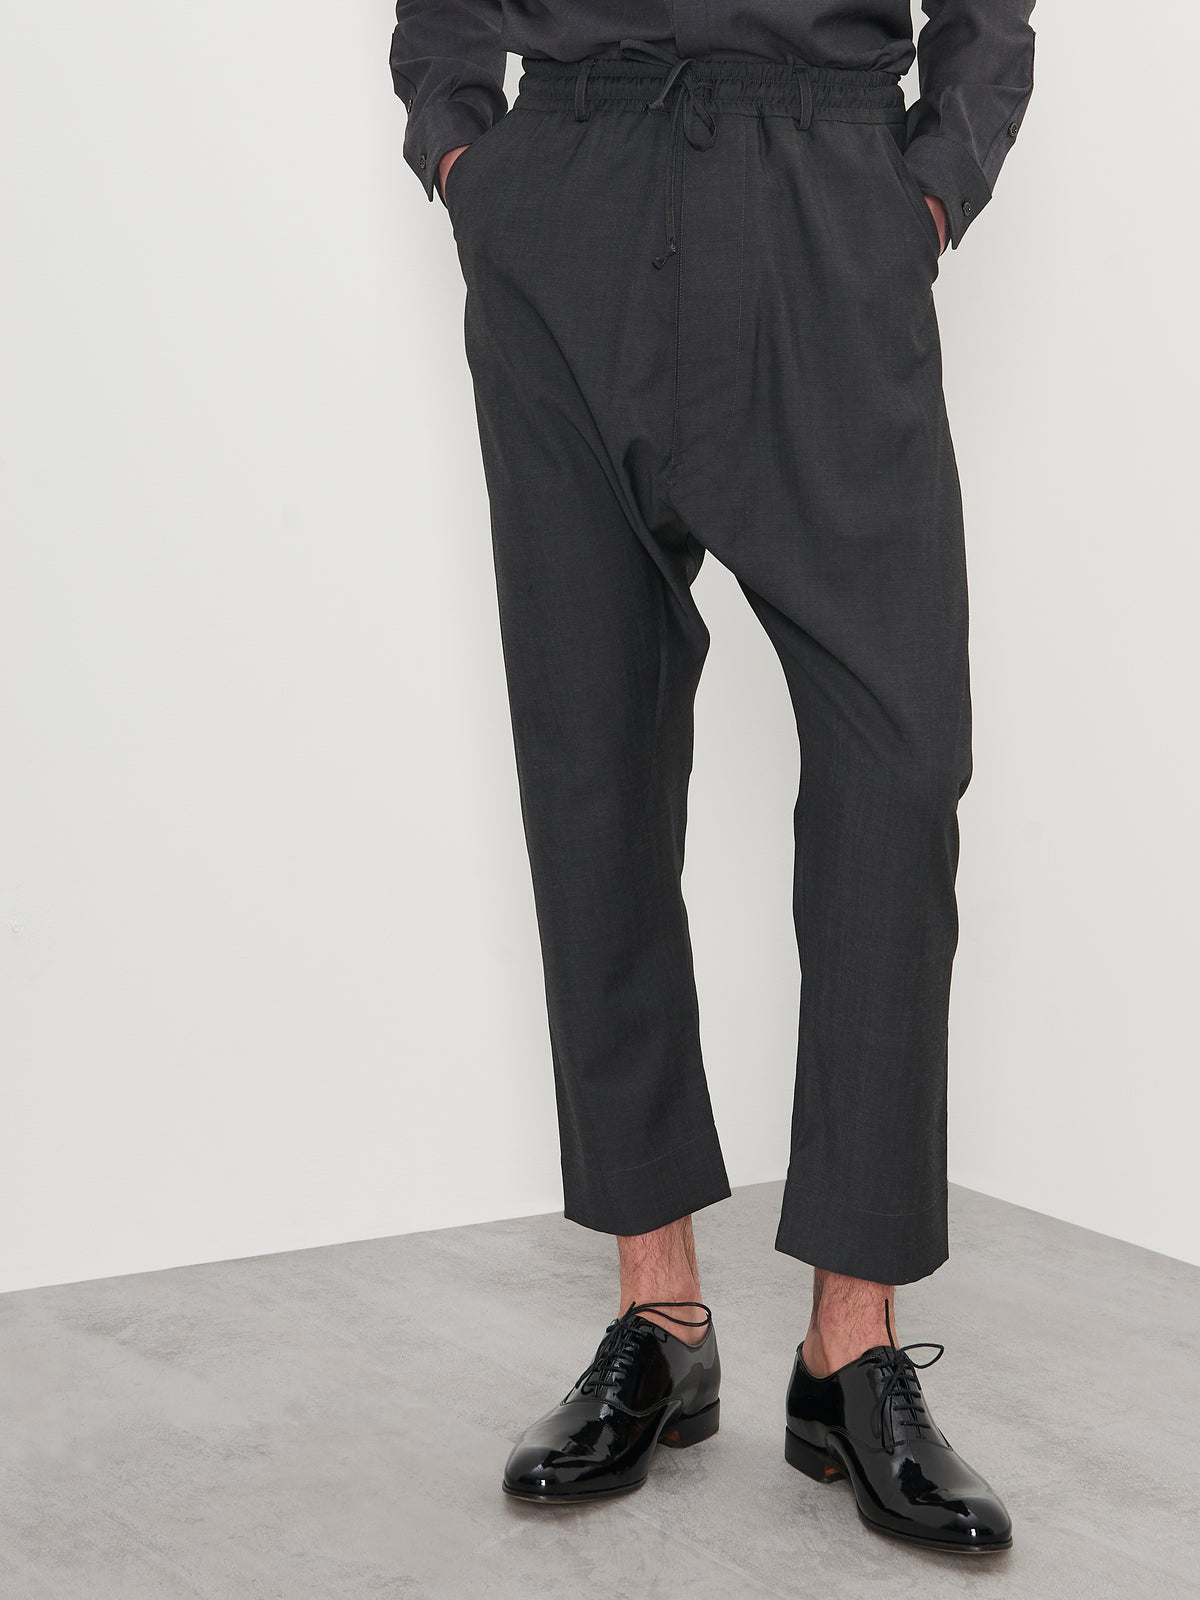 Fender trousers in grey